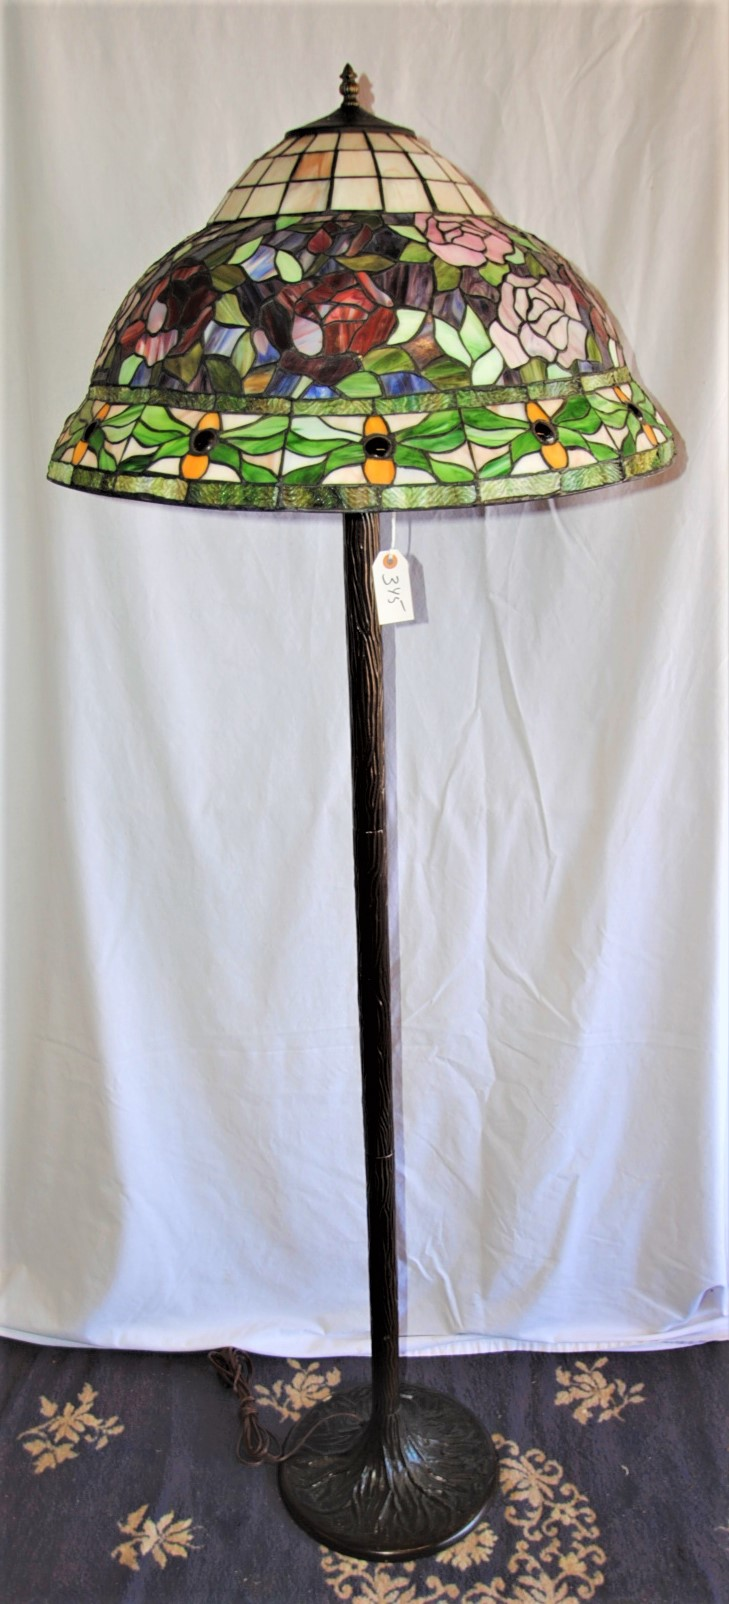 stained glass floor lamp. Black Bedroom Furniture Sets. Home Design Ideas